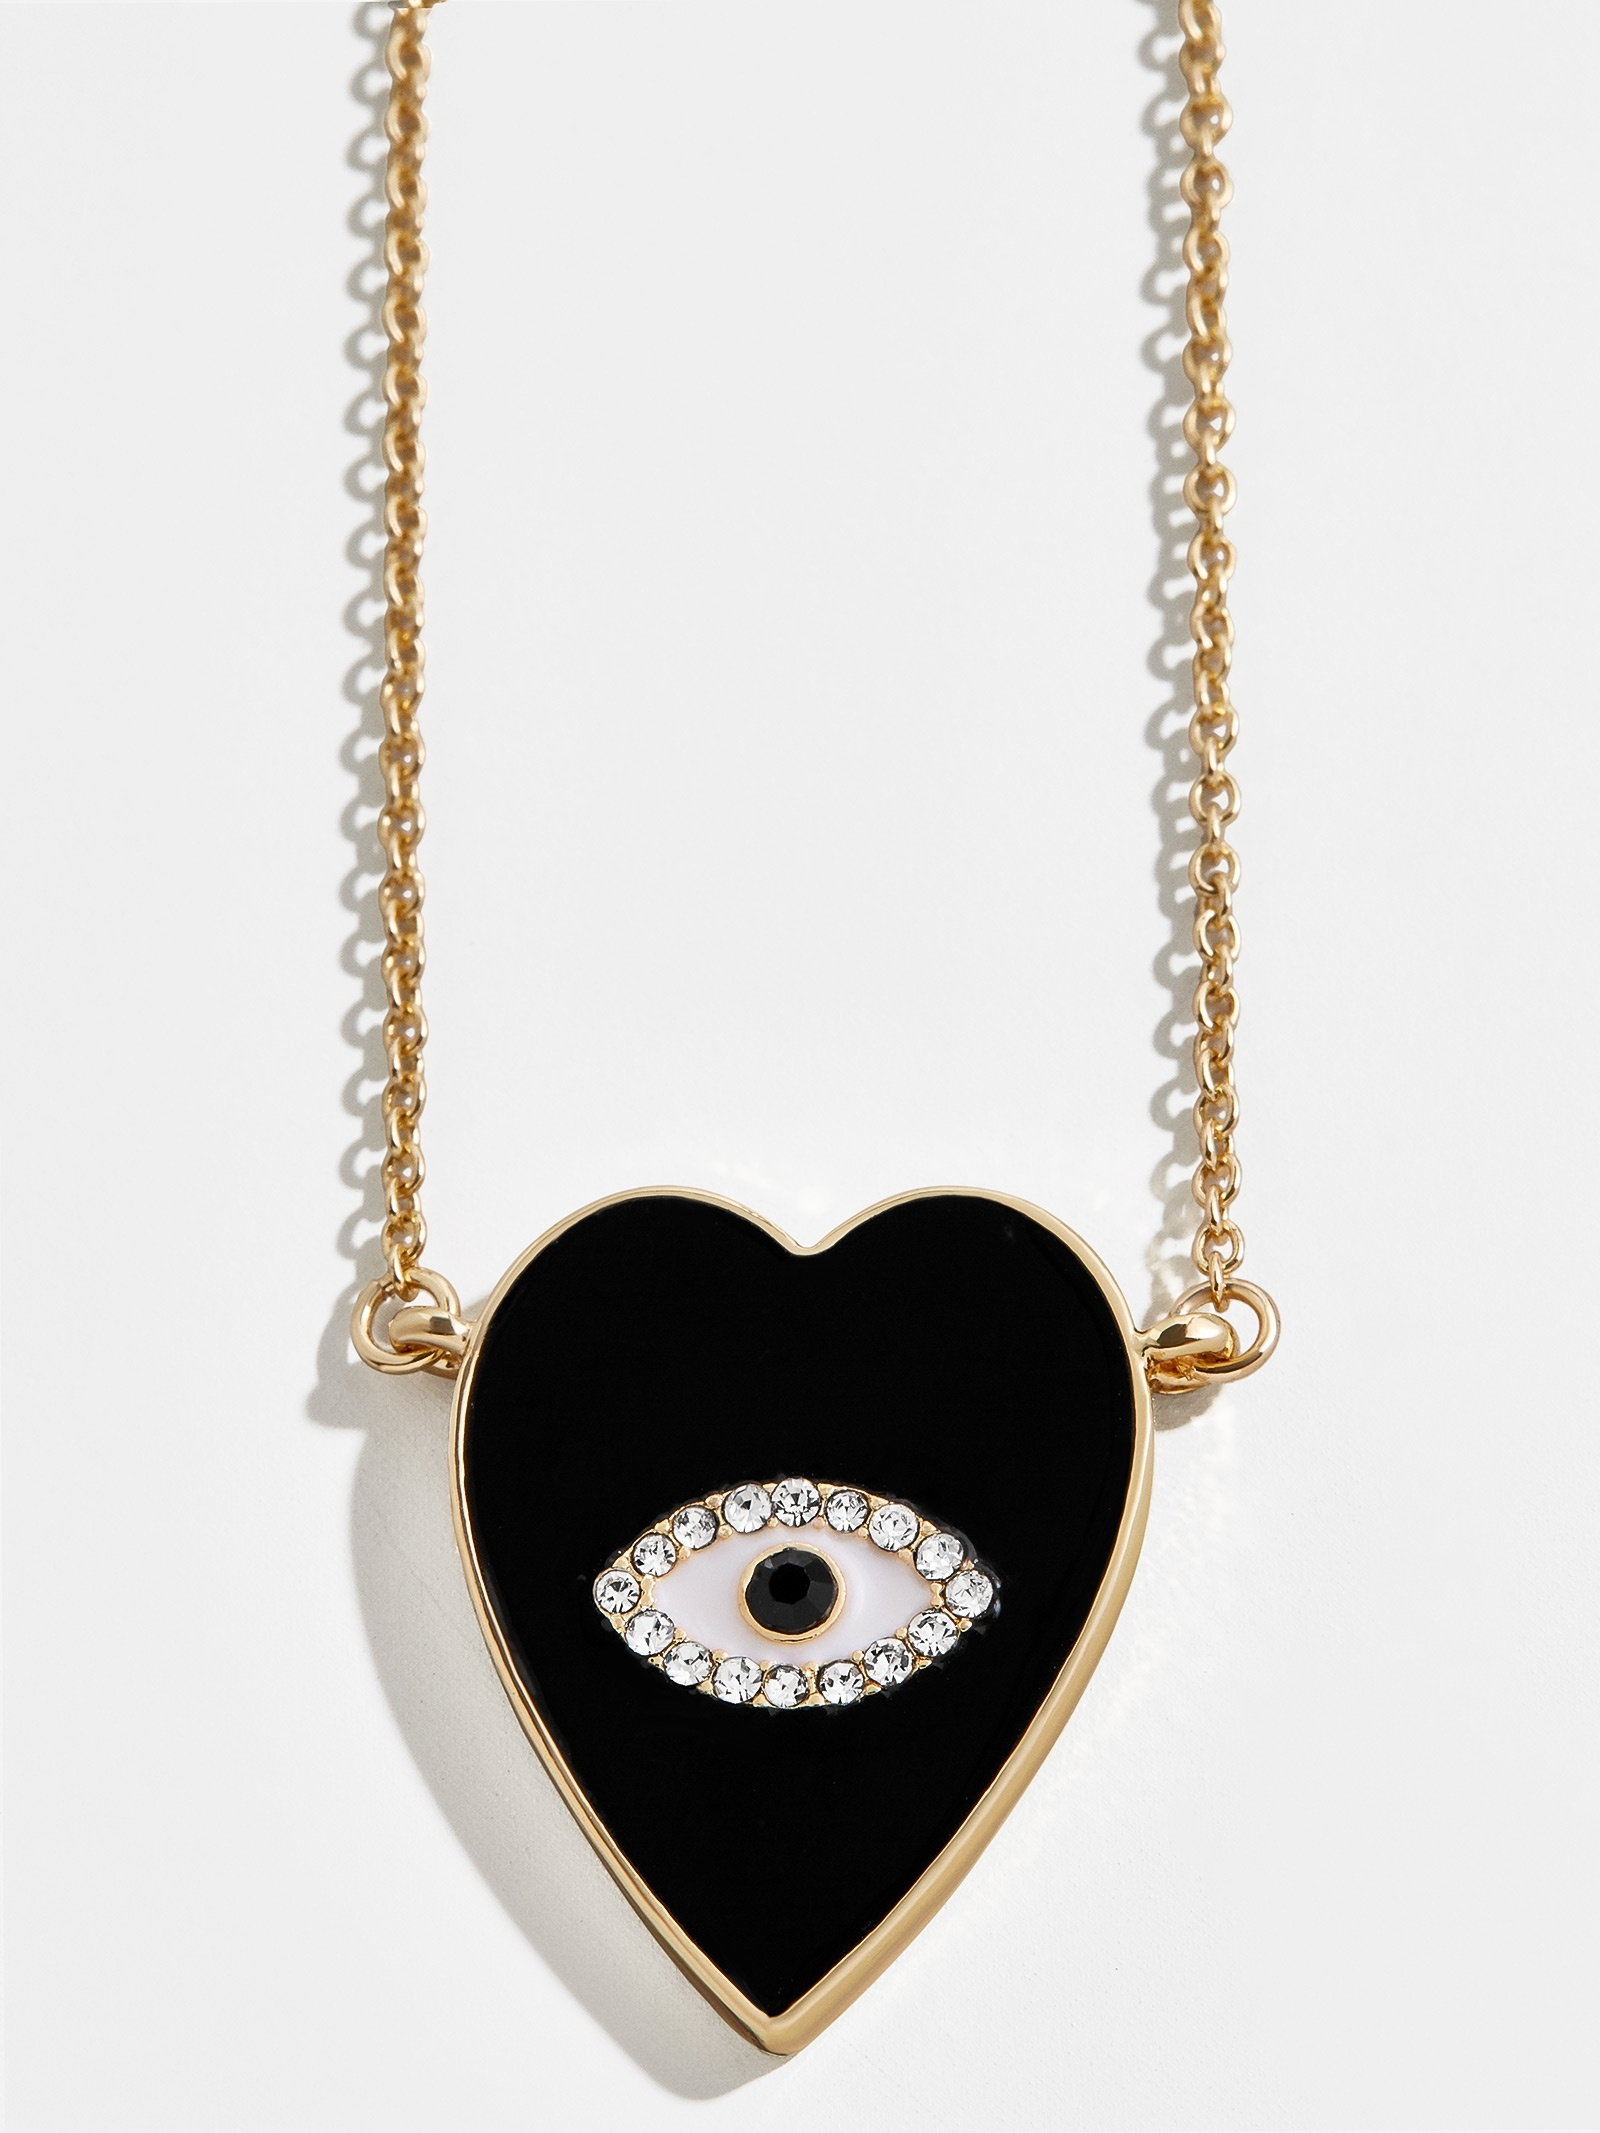 Muses Pendant Necklace by Baublebar